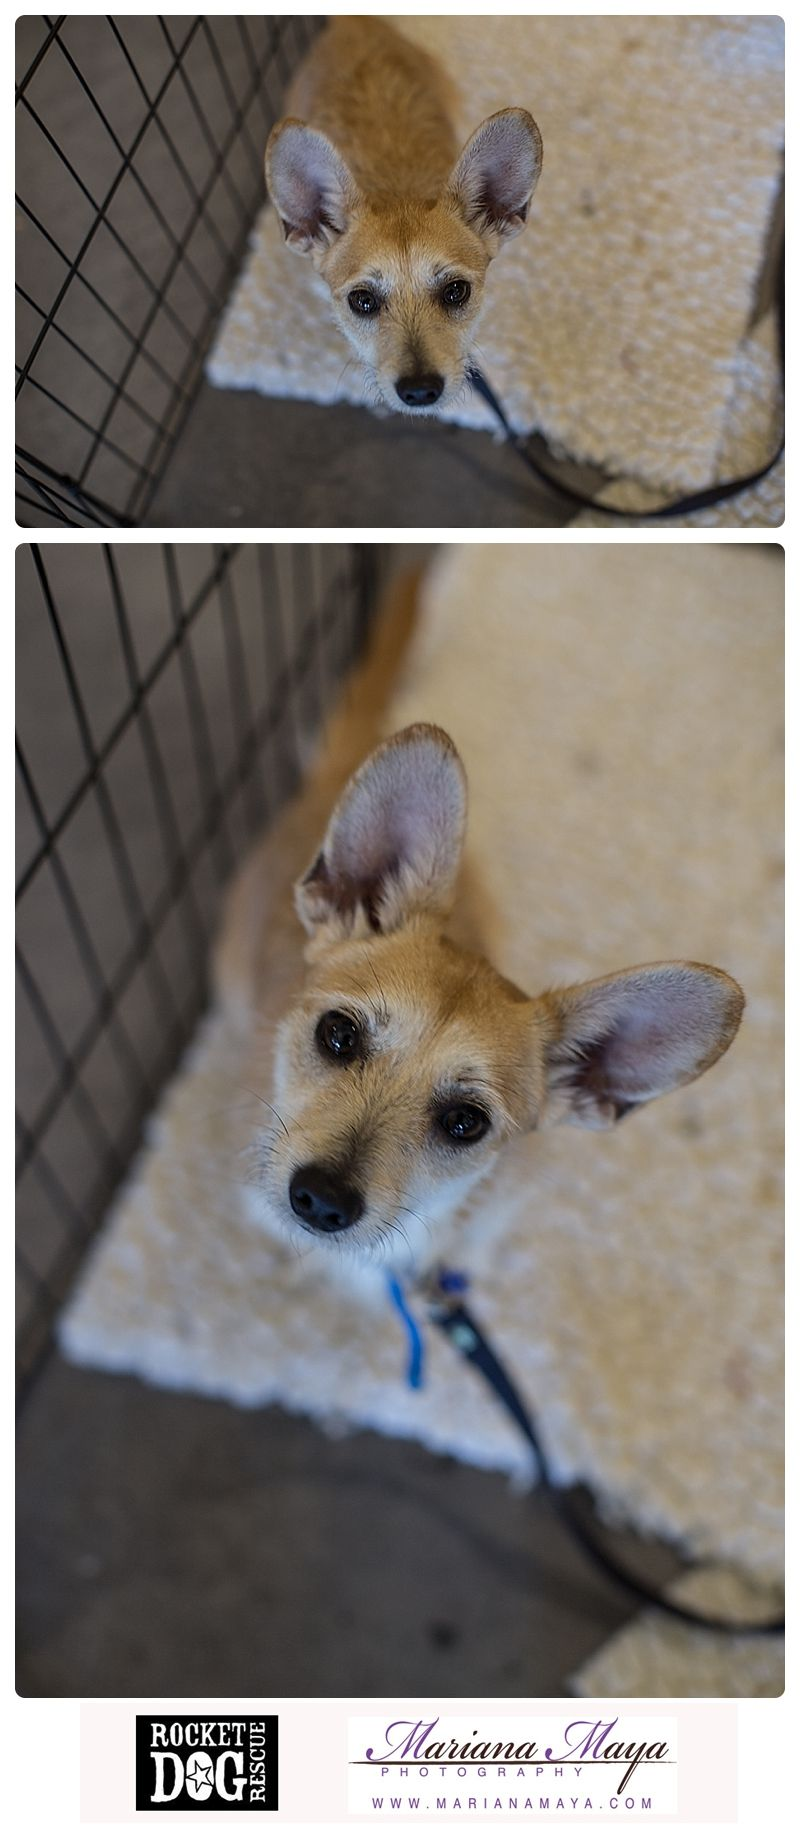 Available For Adoption Through Rocket Dog Rescue In San Francisco Ca Cute Pets Rescue Dogs Cute Animals Dogs